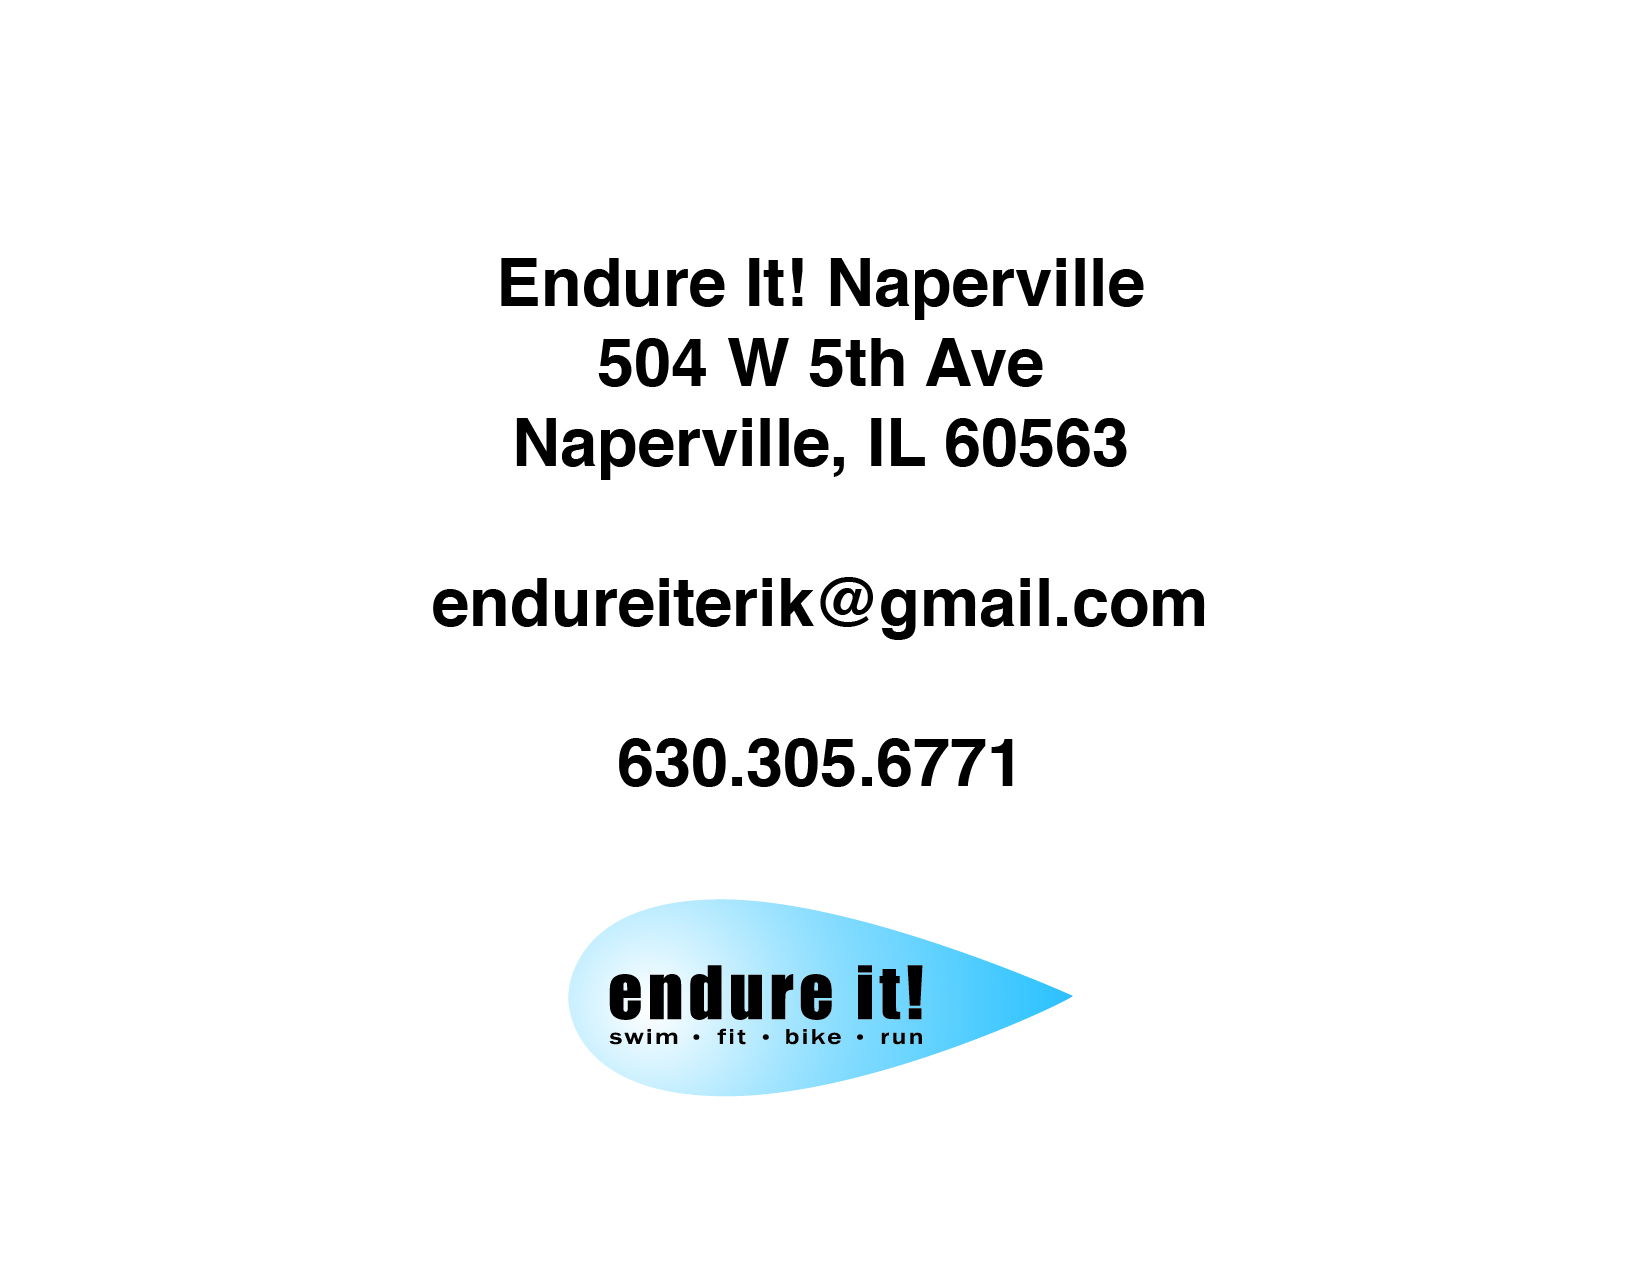 Endure It! Thank You Service Card-01.jpg